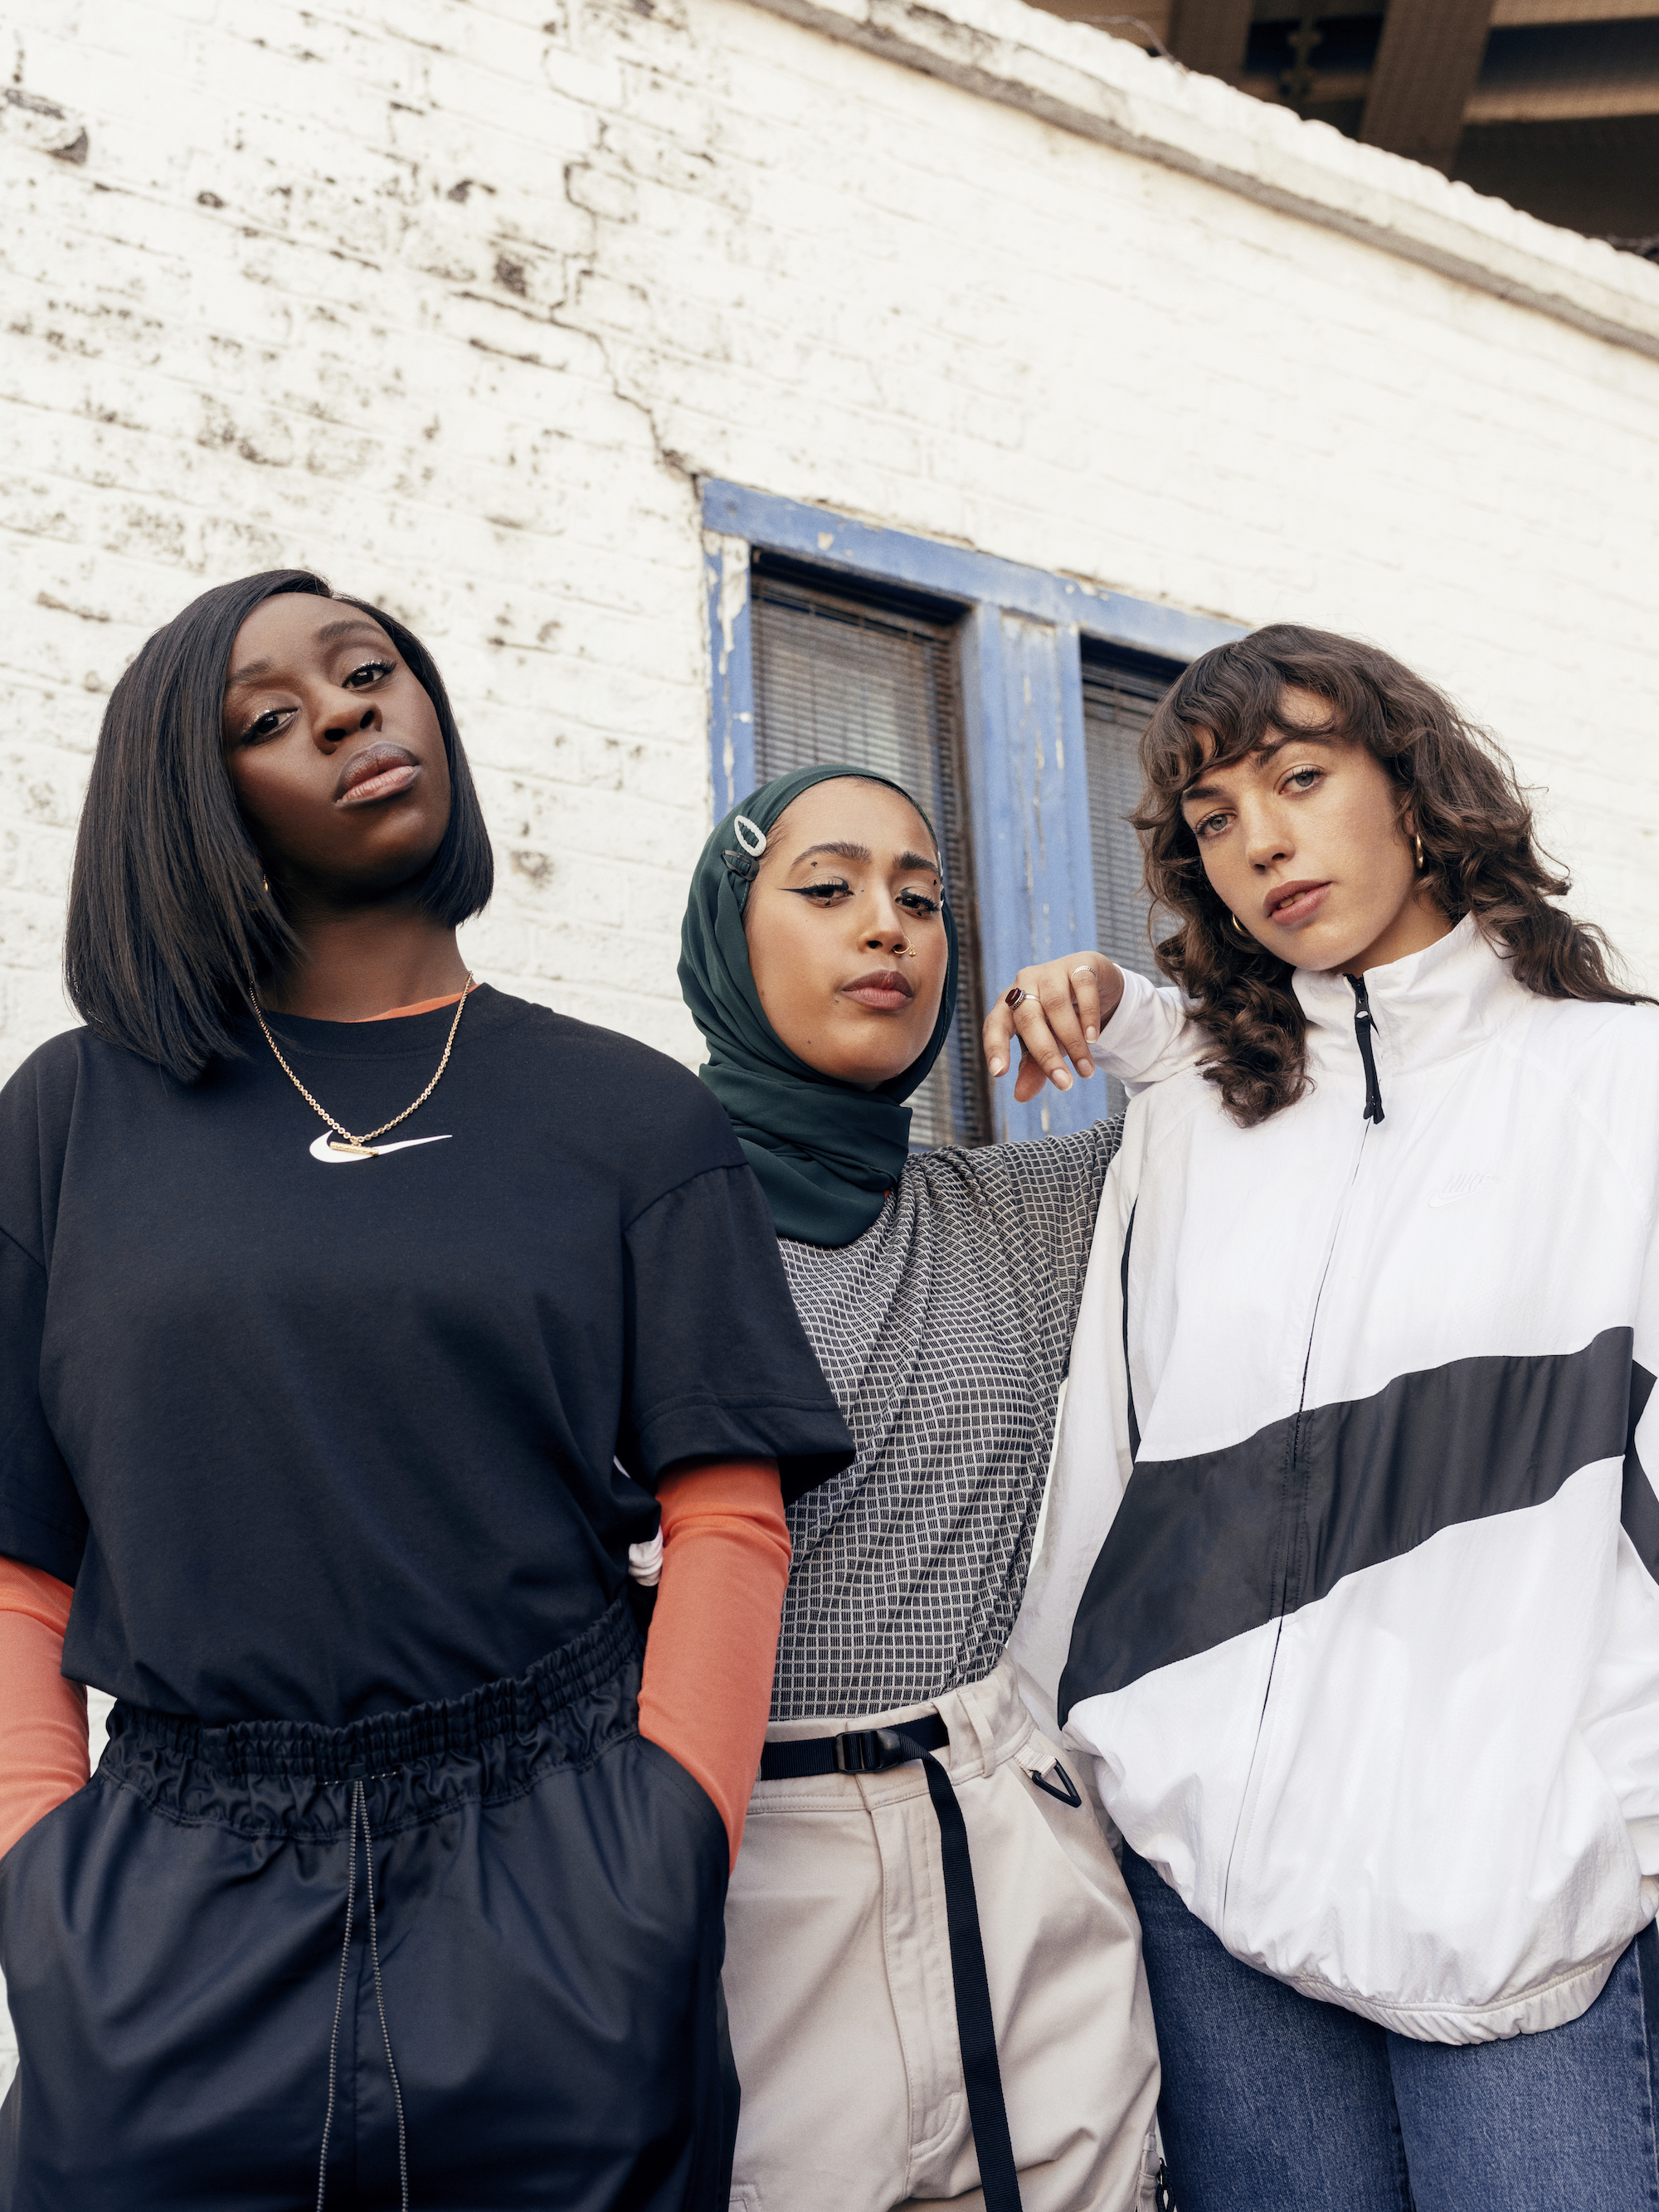 photographer Lauren Maccabee, stylist and journalist Bemi Shaw, and makeup artist Salwa Rahman for Nike React Element 55